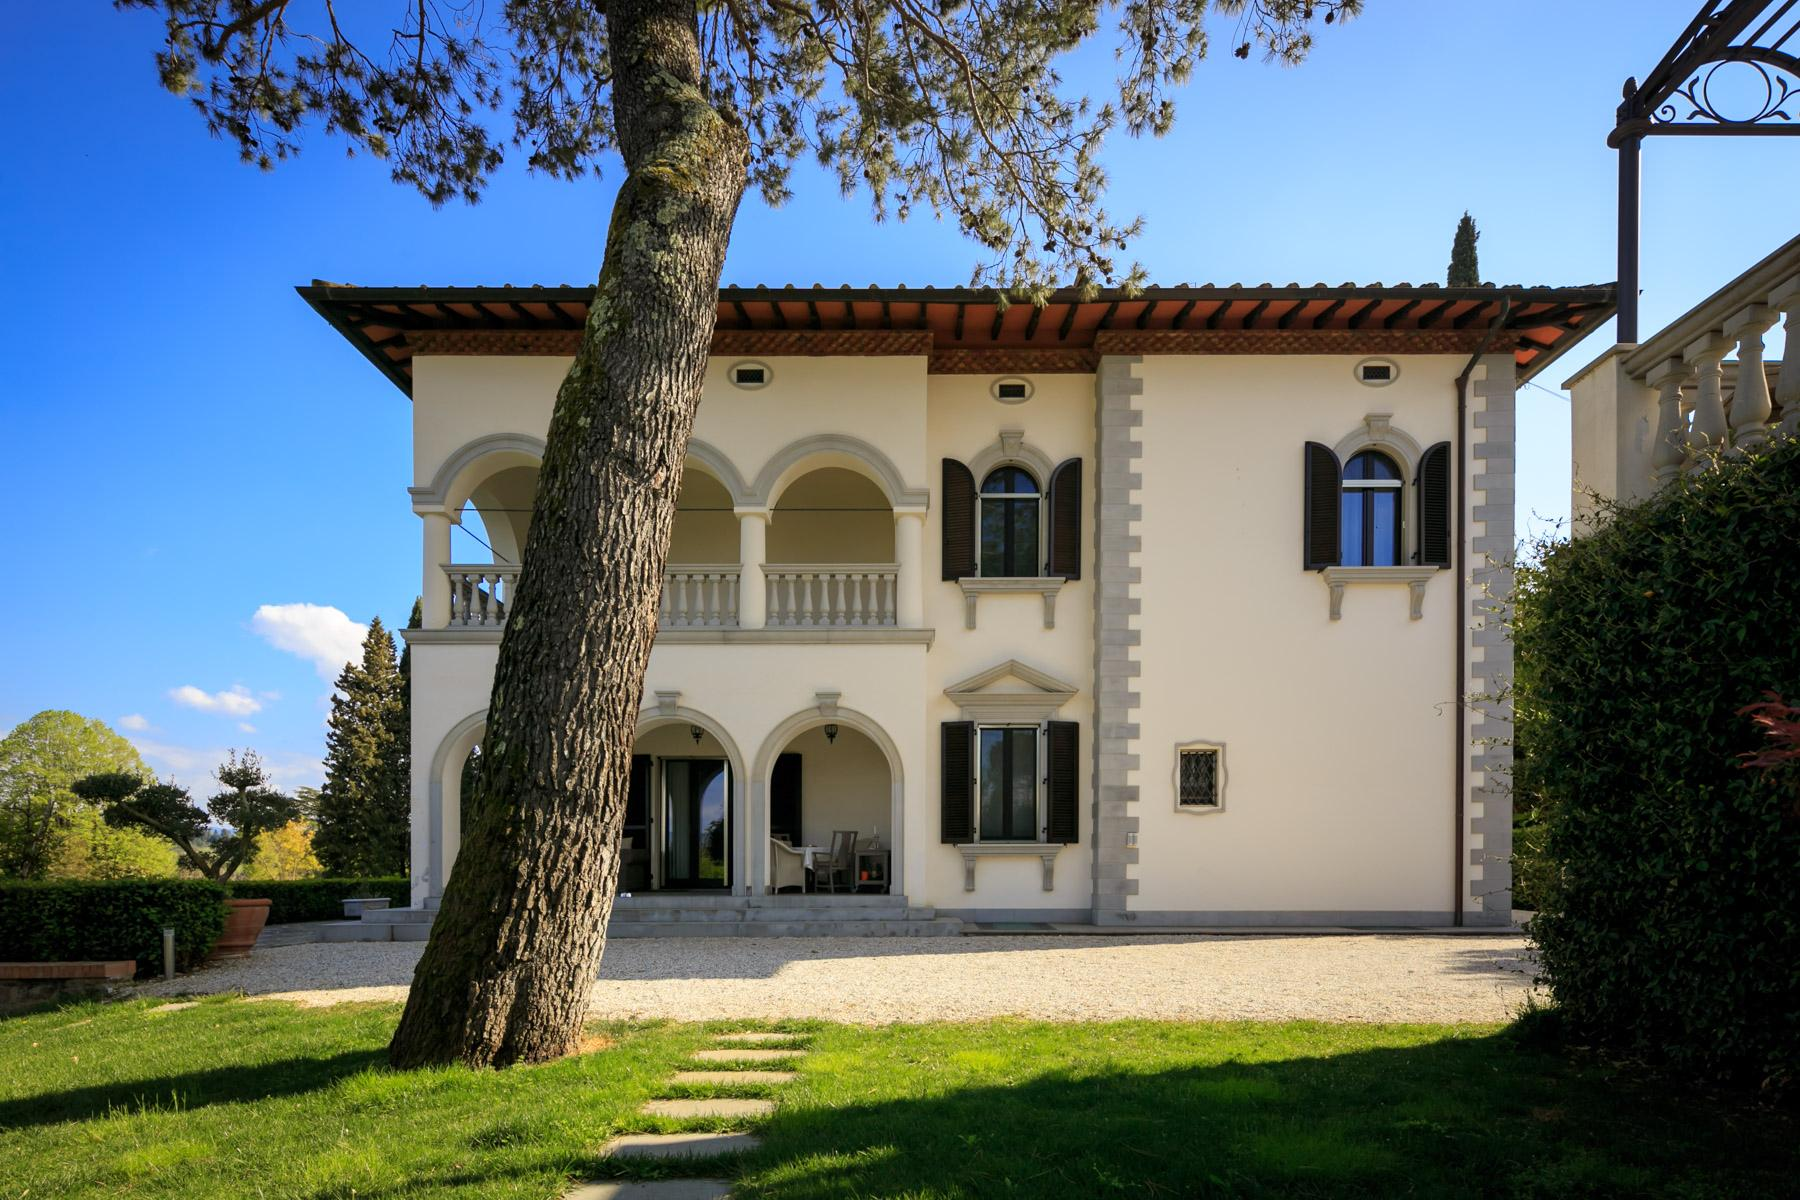 Splendid villa with pool on the Pian dei Giullari hill in Florence - 3